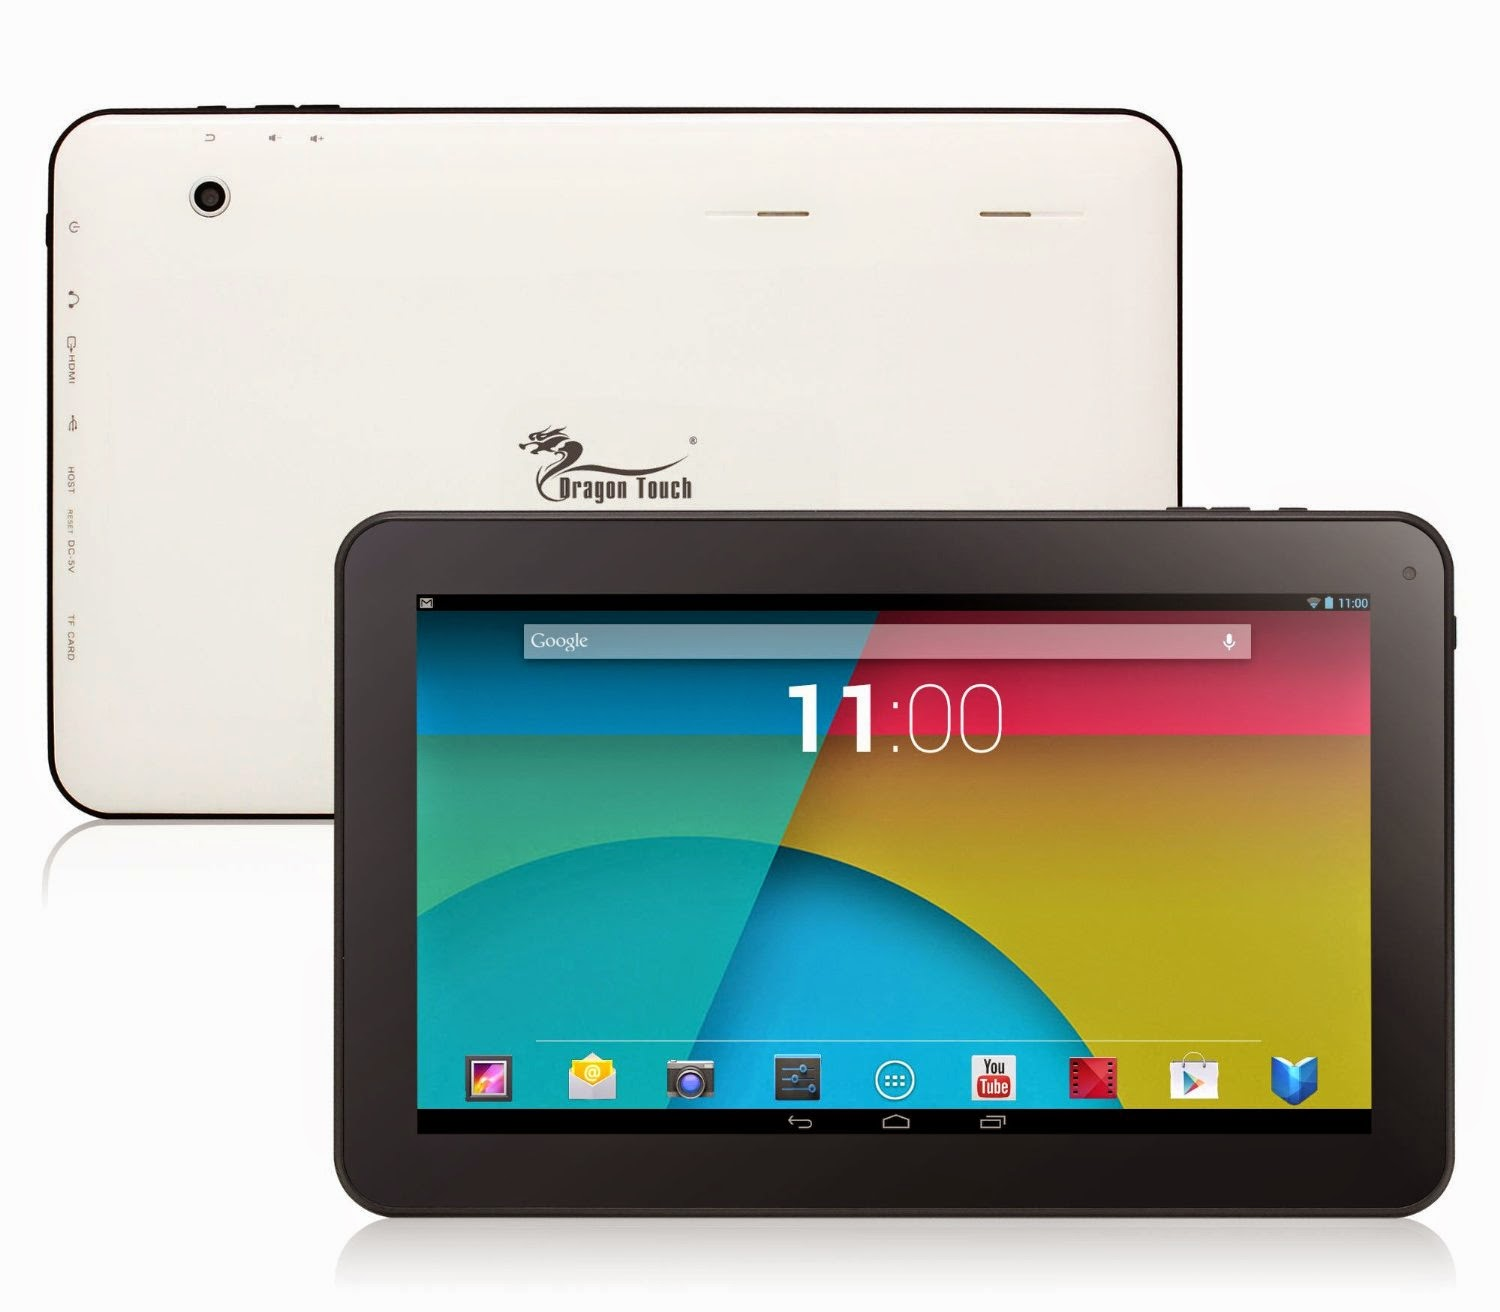 "Dragon Touch A1X 10.1"" Quad Core Google Android 4.4 KitKat Tablet PC review 2014"